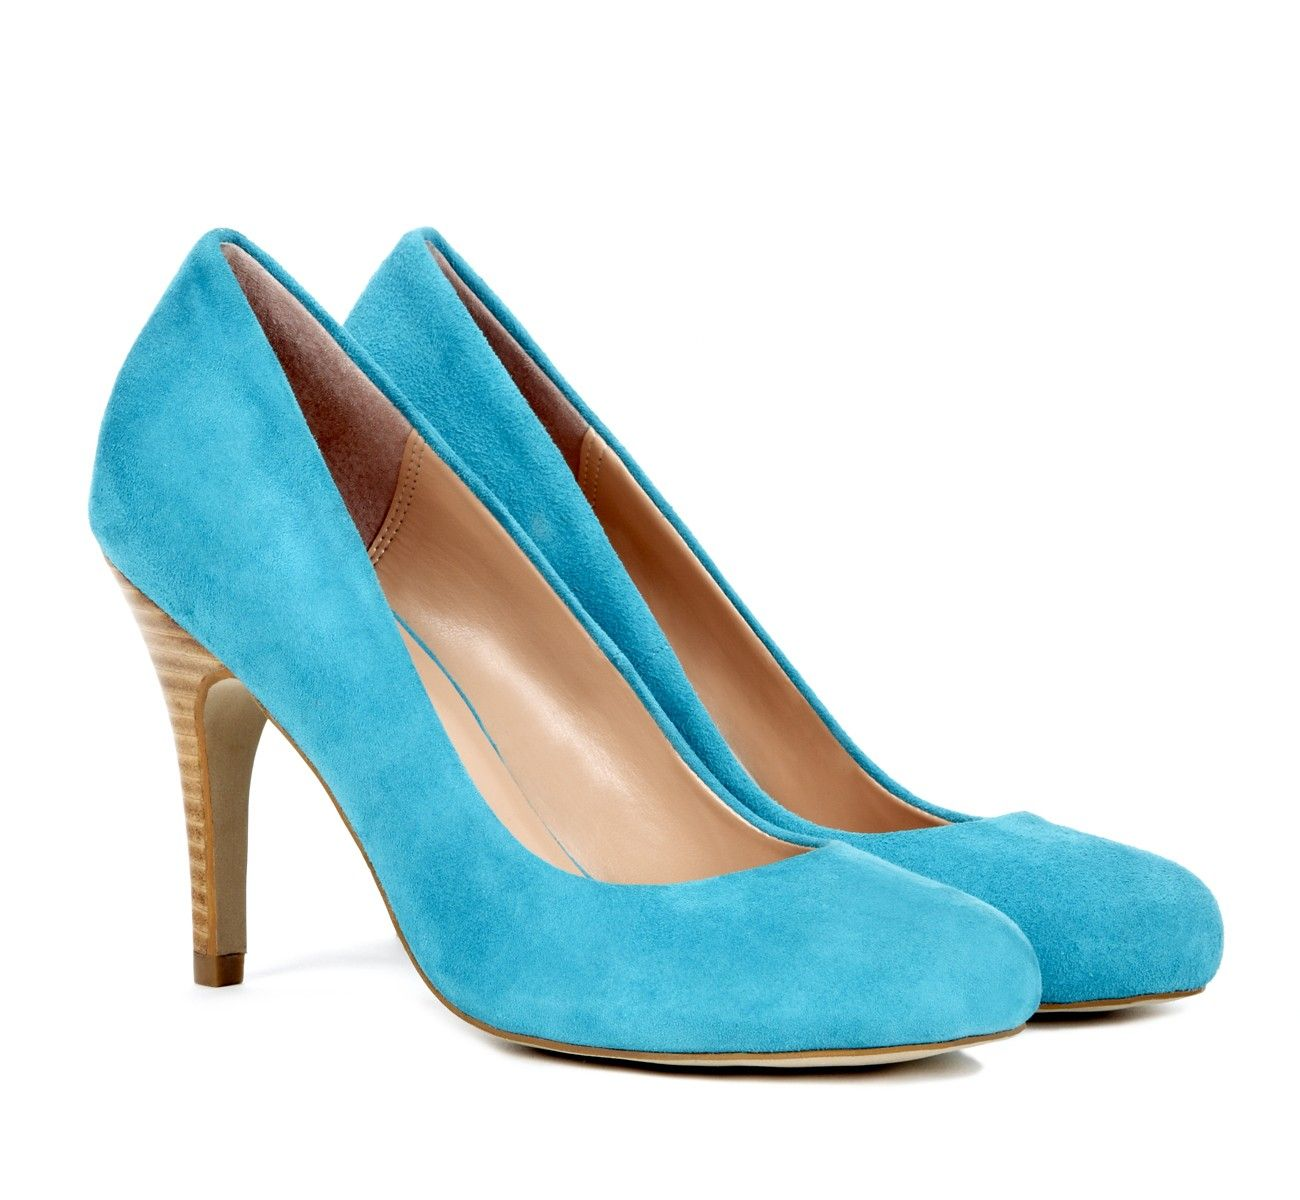 Round toe pumps - Marina